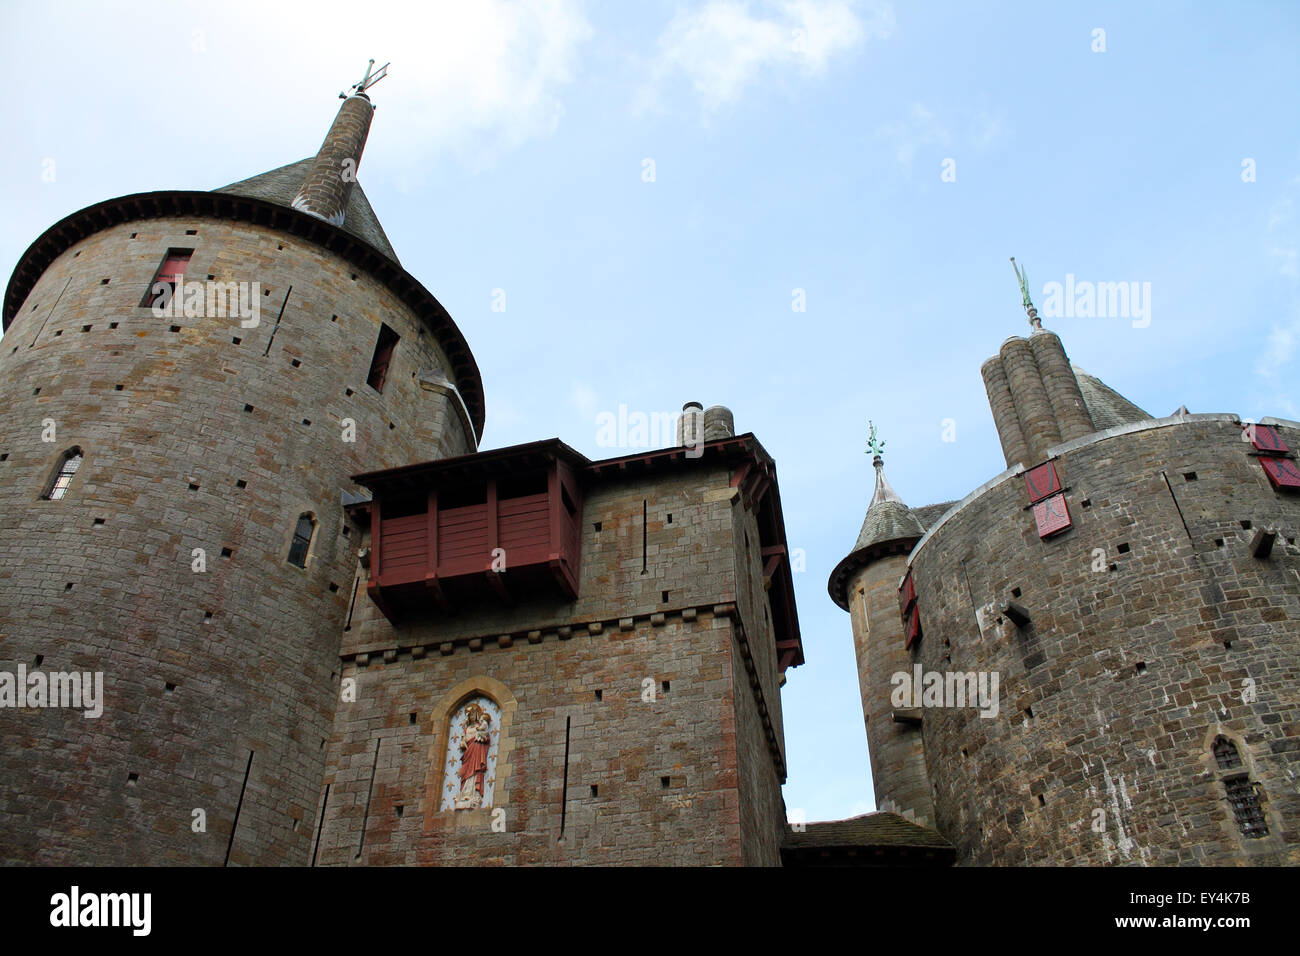 Castle or Castell Coch, Cardiff, South Wales, UK - Stock Image